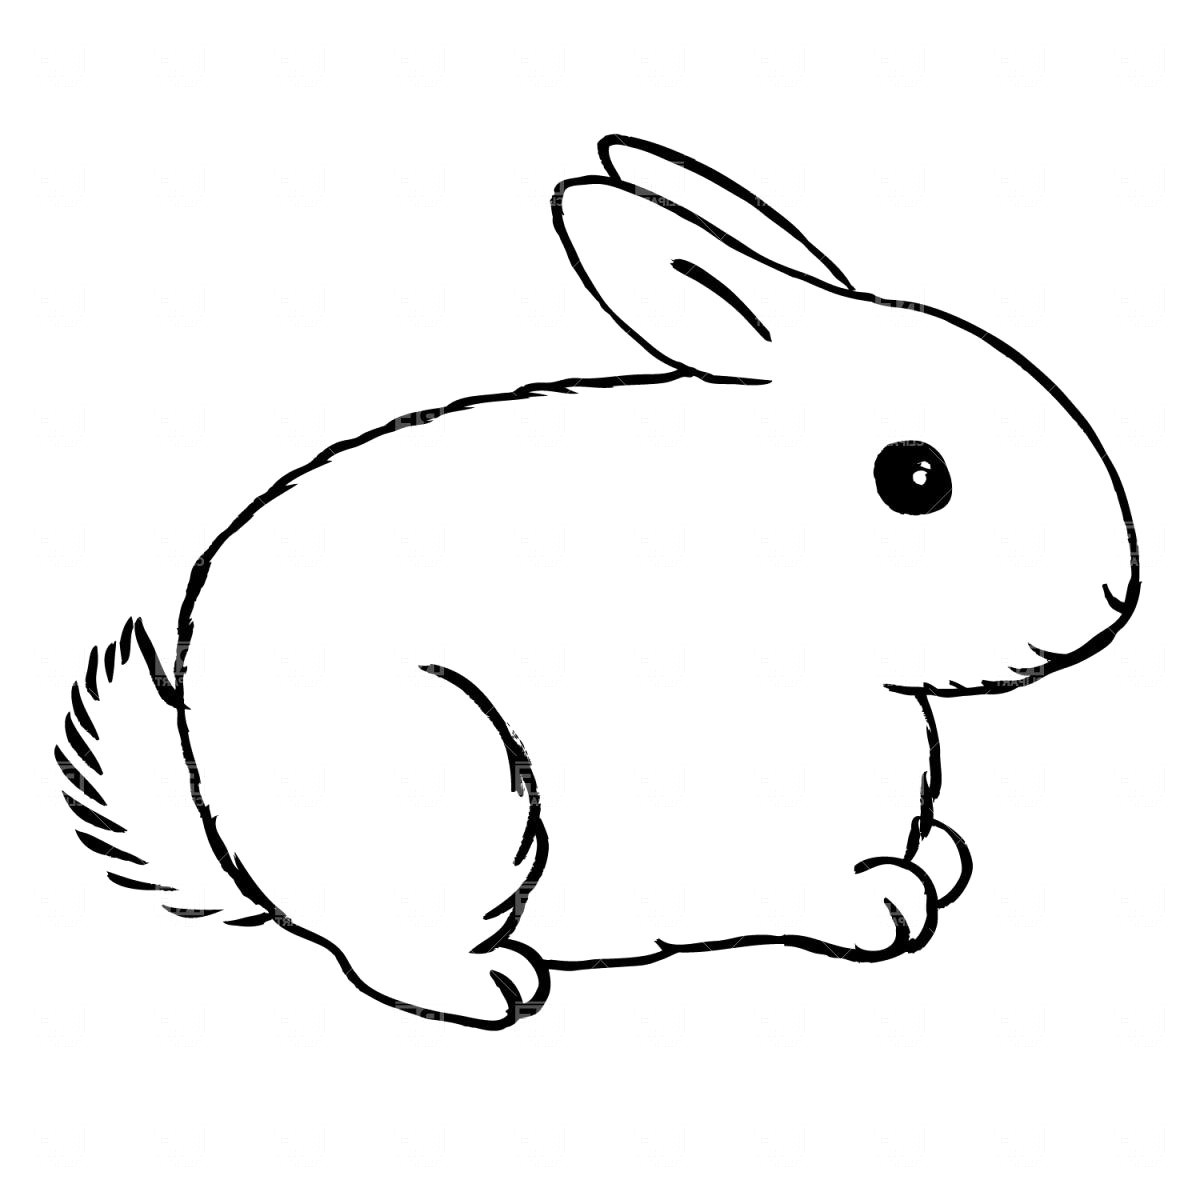 Black and white rabbit clipart 1 » Clipart Portal.